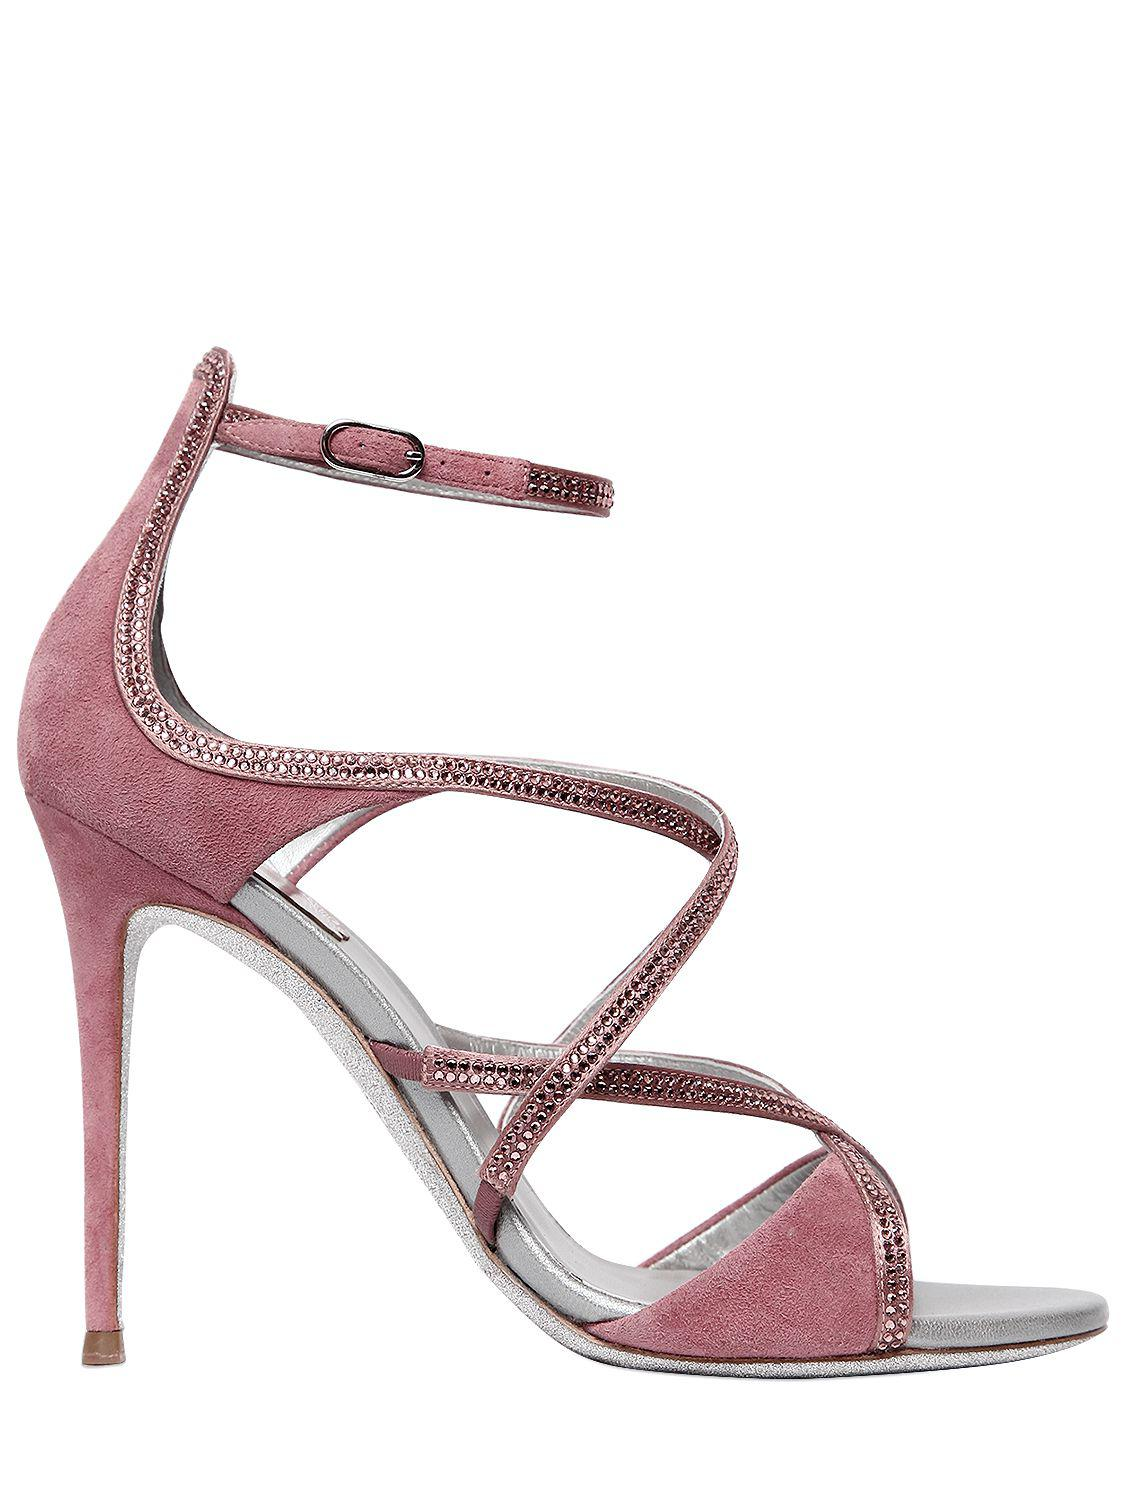 Offer Sale Women Shoes Ren Caovilla 105mm Suede Cage Sandals w/ Crystals Pink